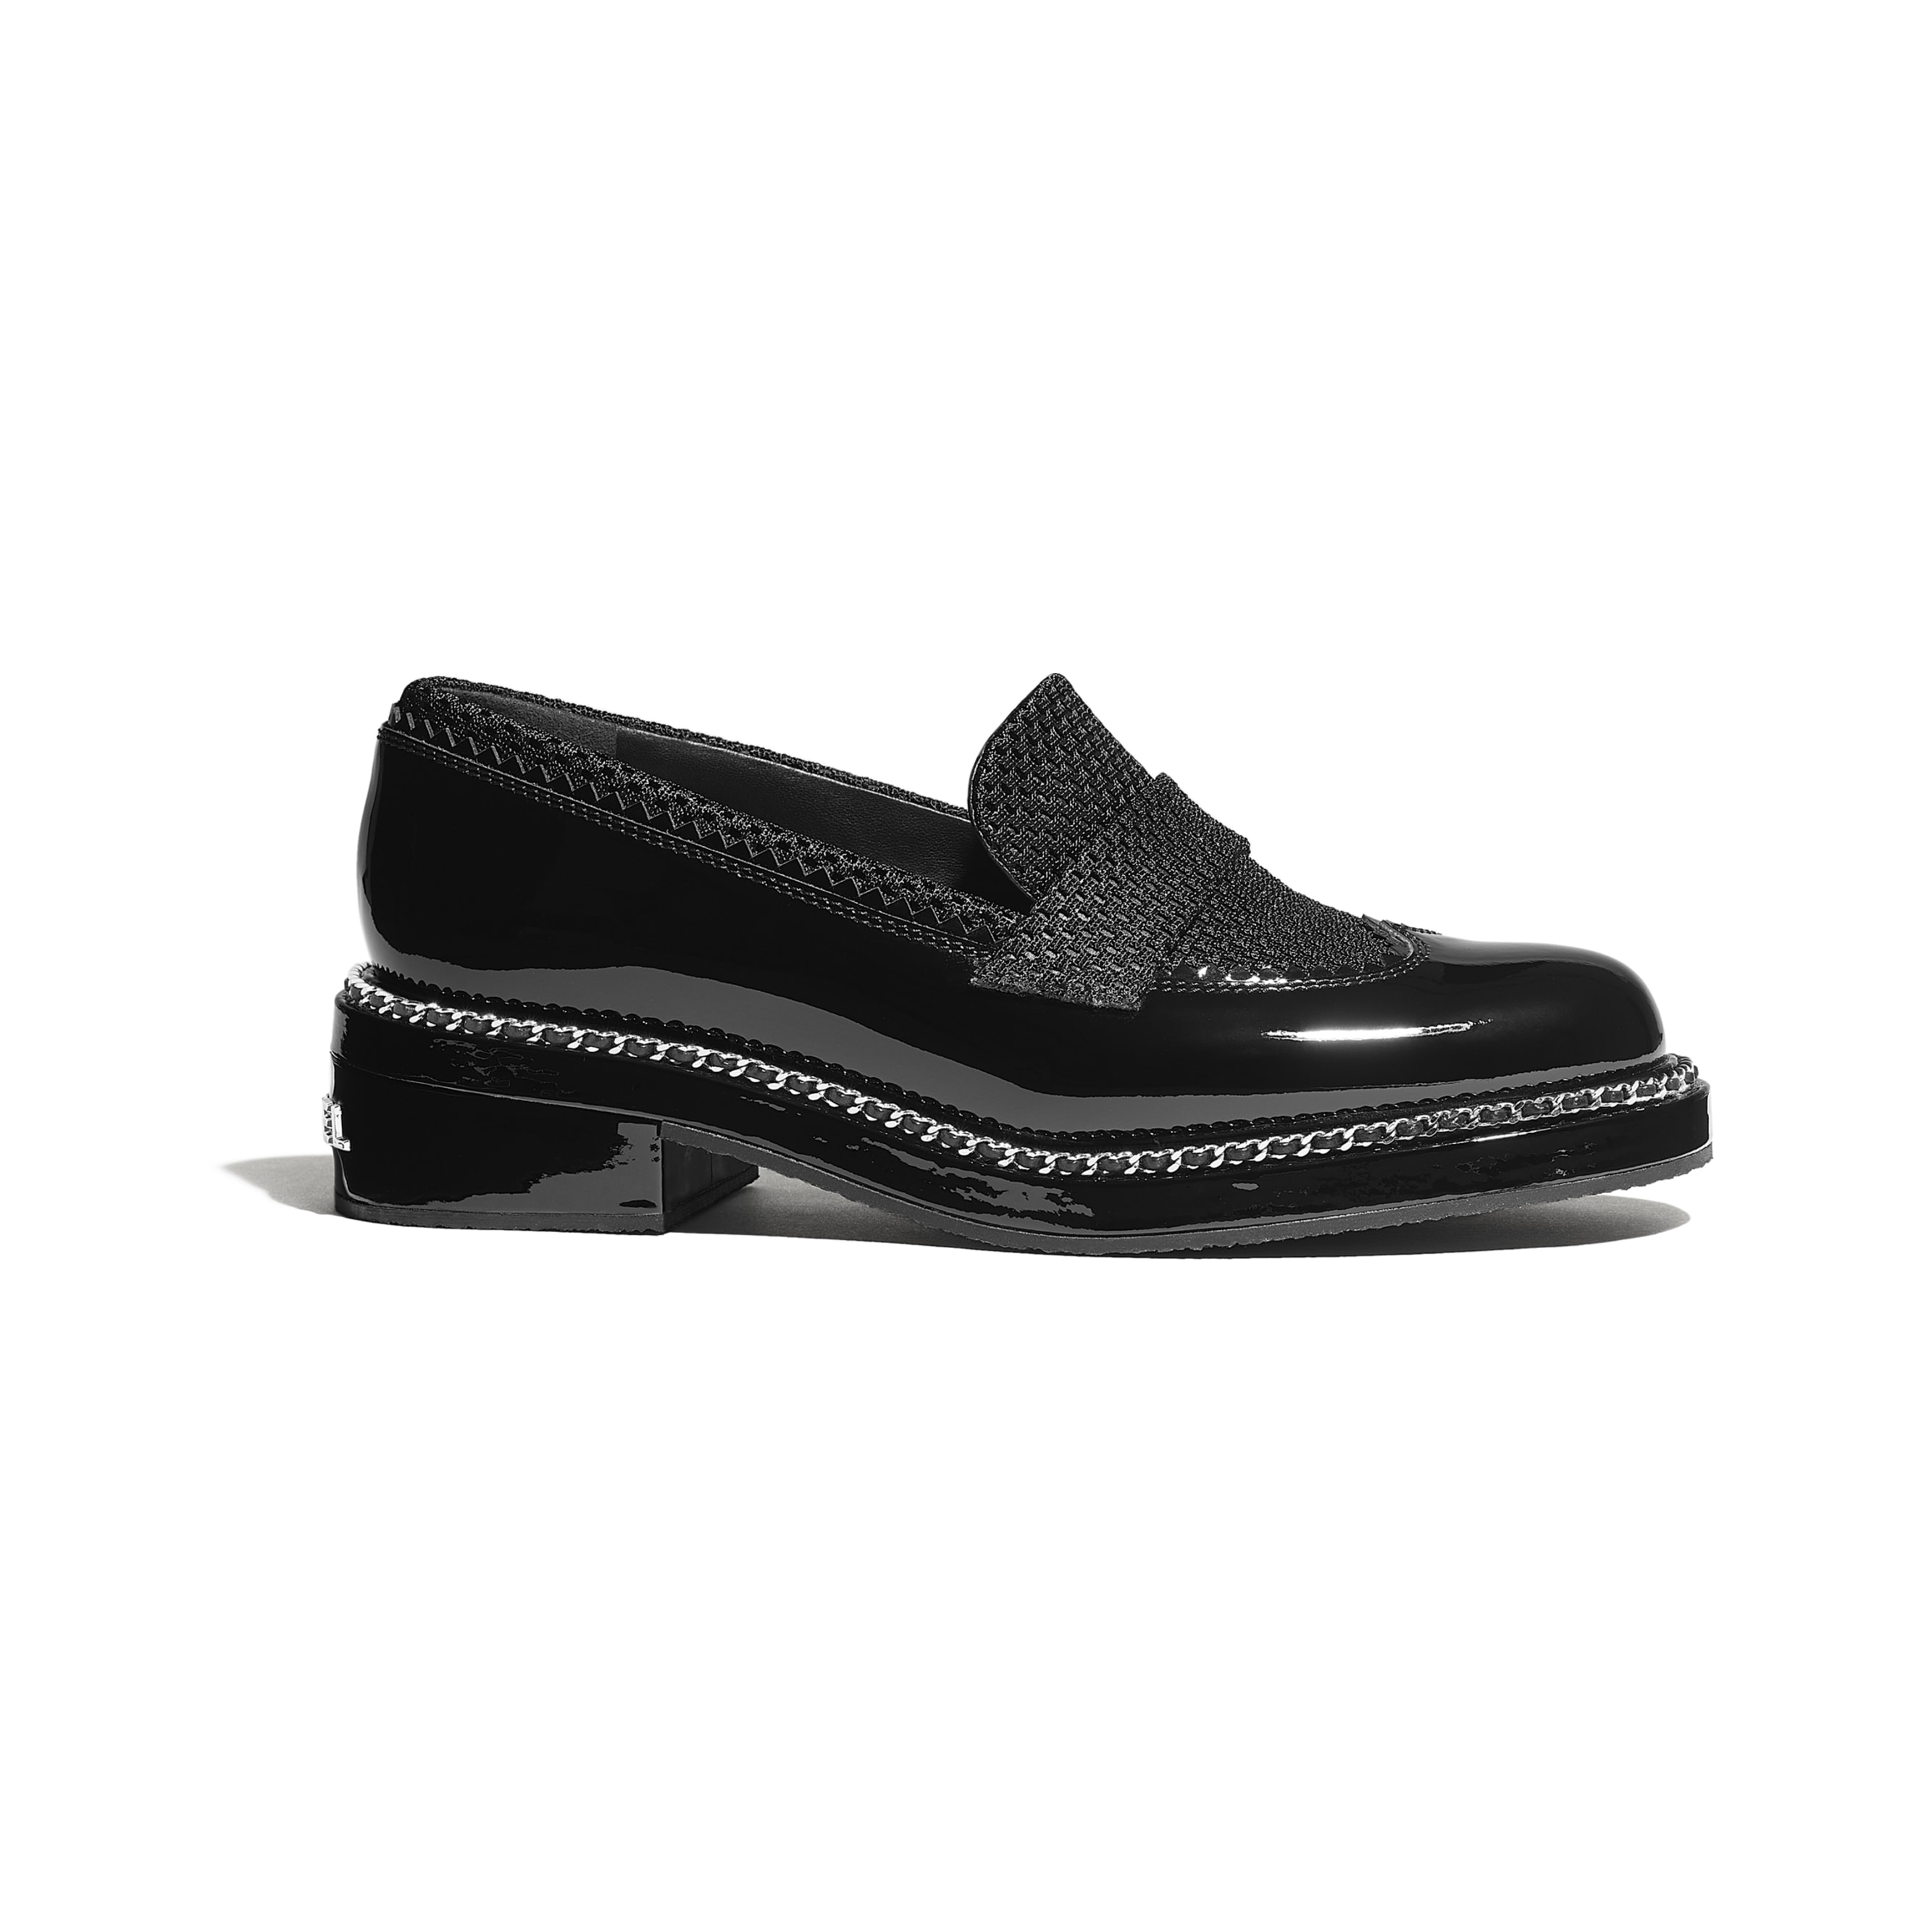 Loafers - Black - Patent Calfskin & Mixed Fibers - Default view - see standard sized version